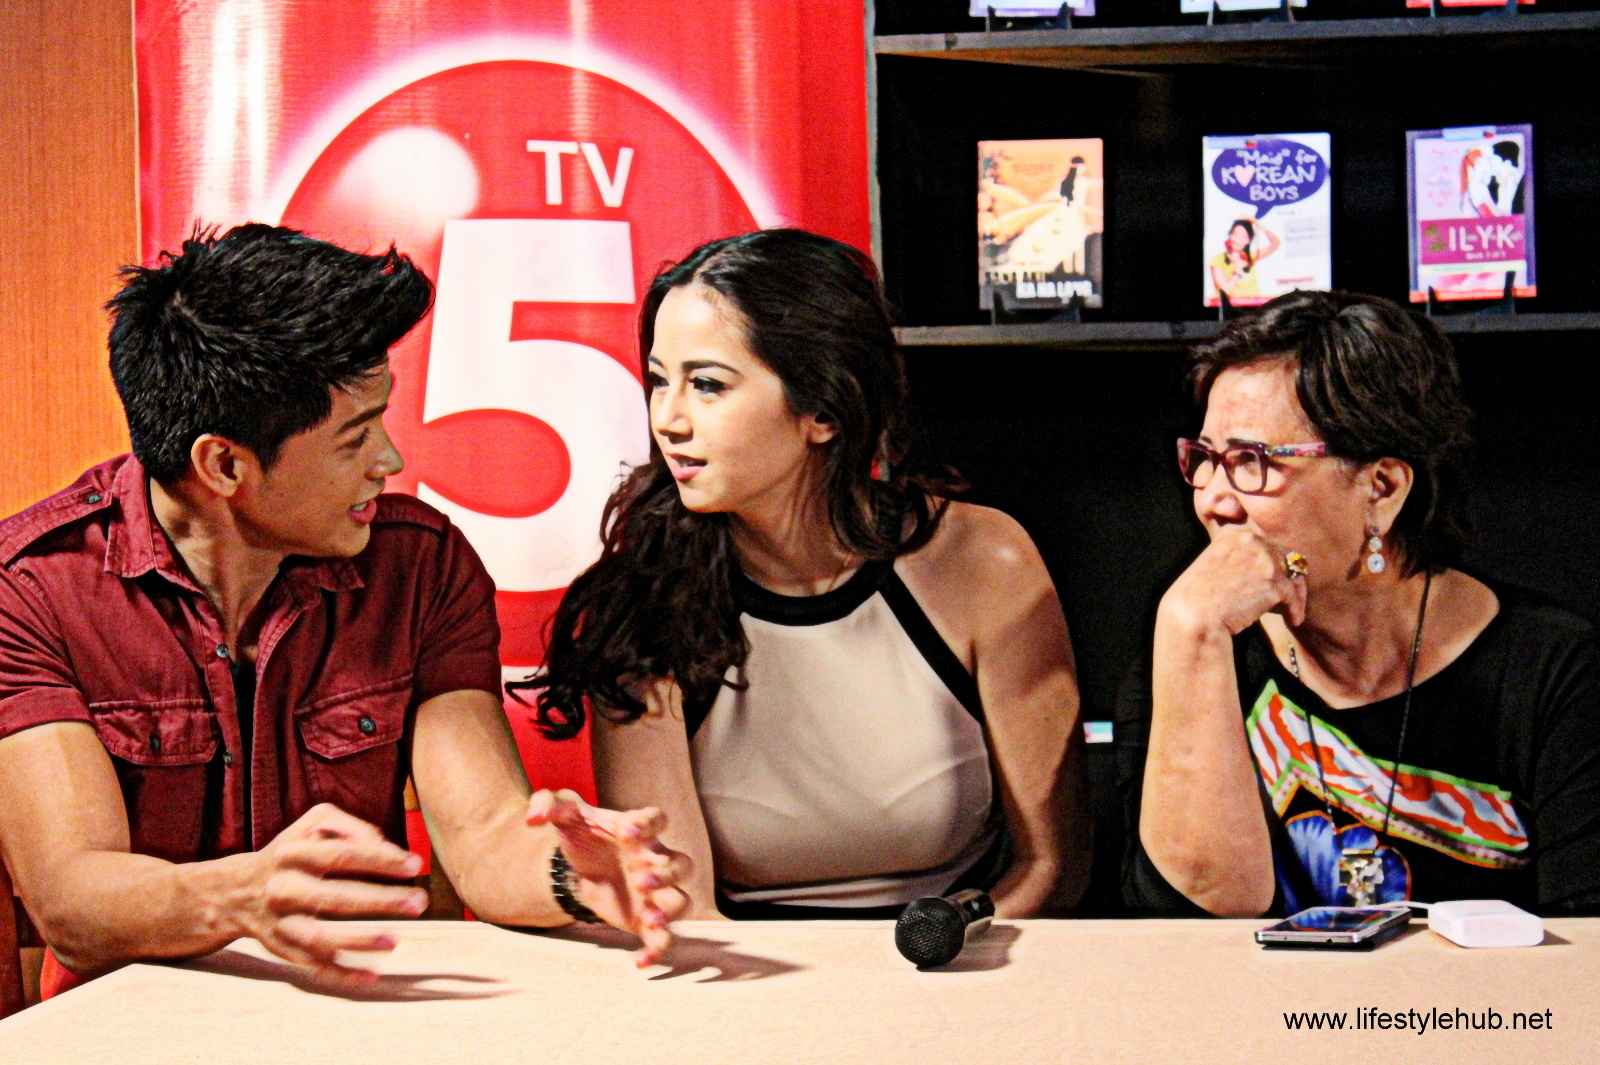 wattpad presents on tv5